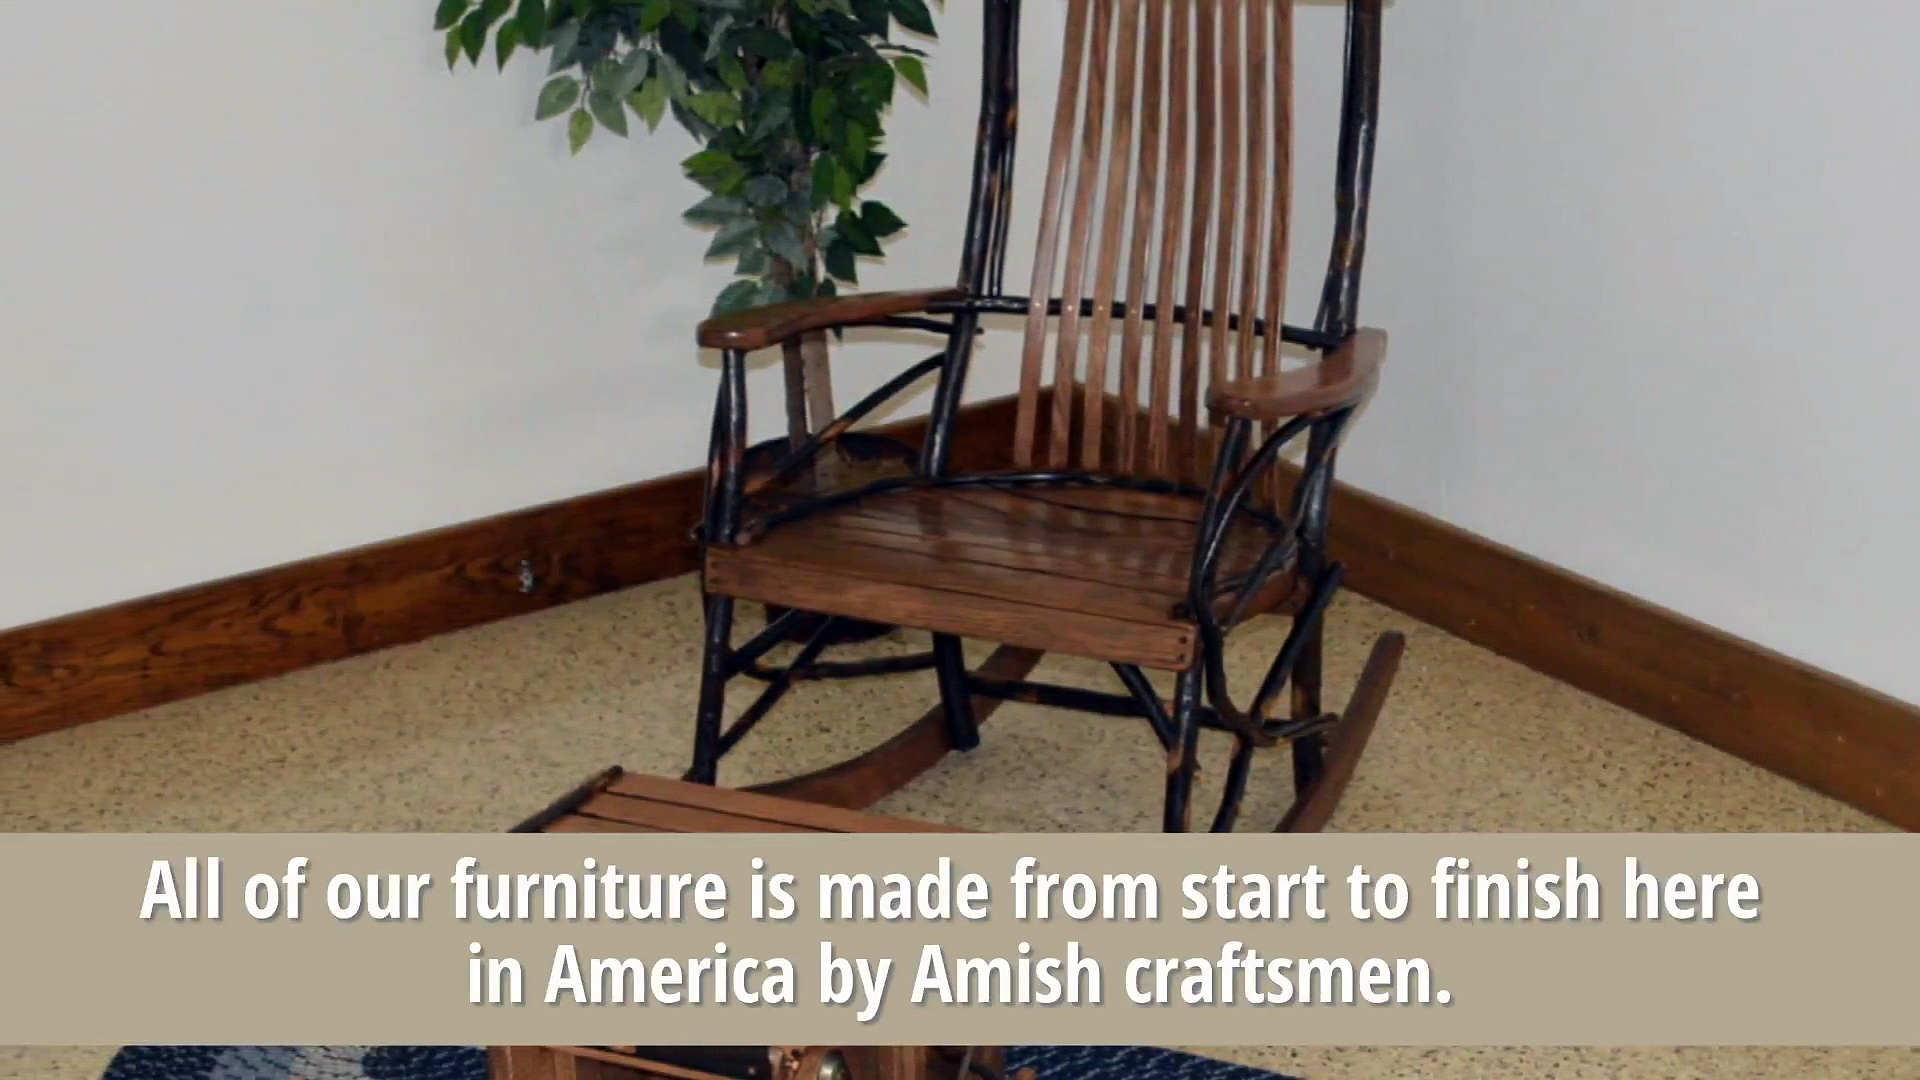 It's All Amish- An American made Amish crafted furniture